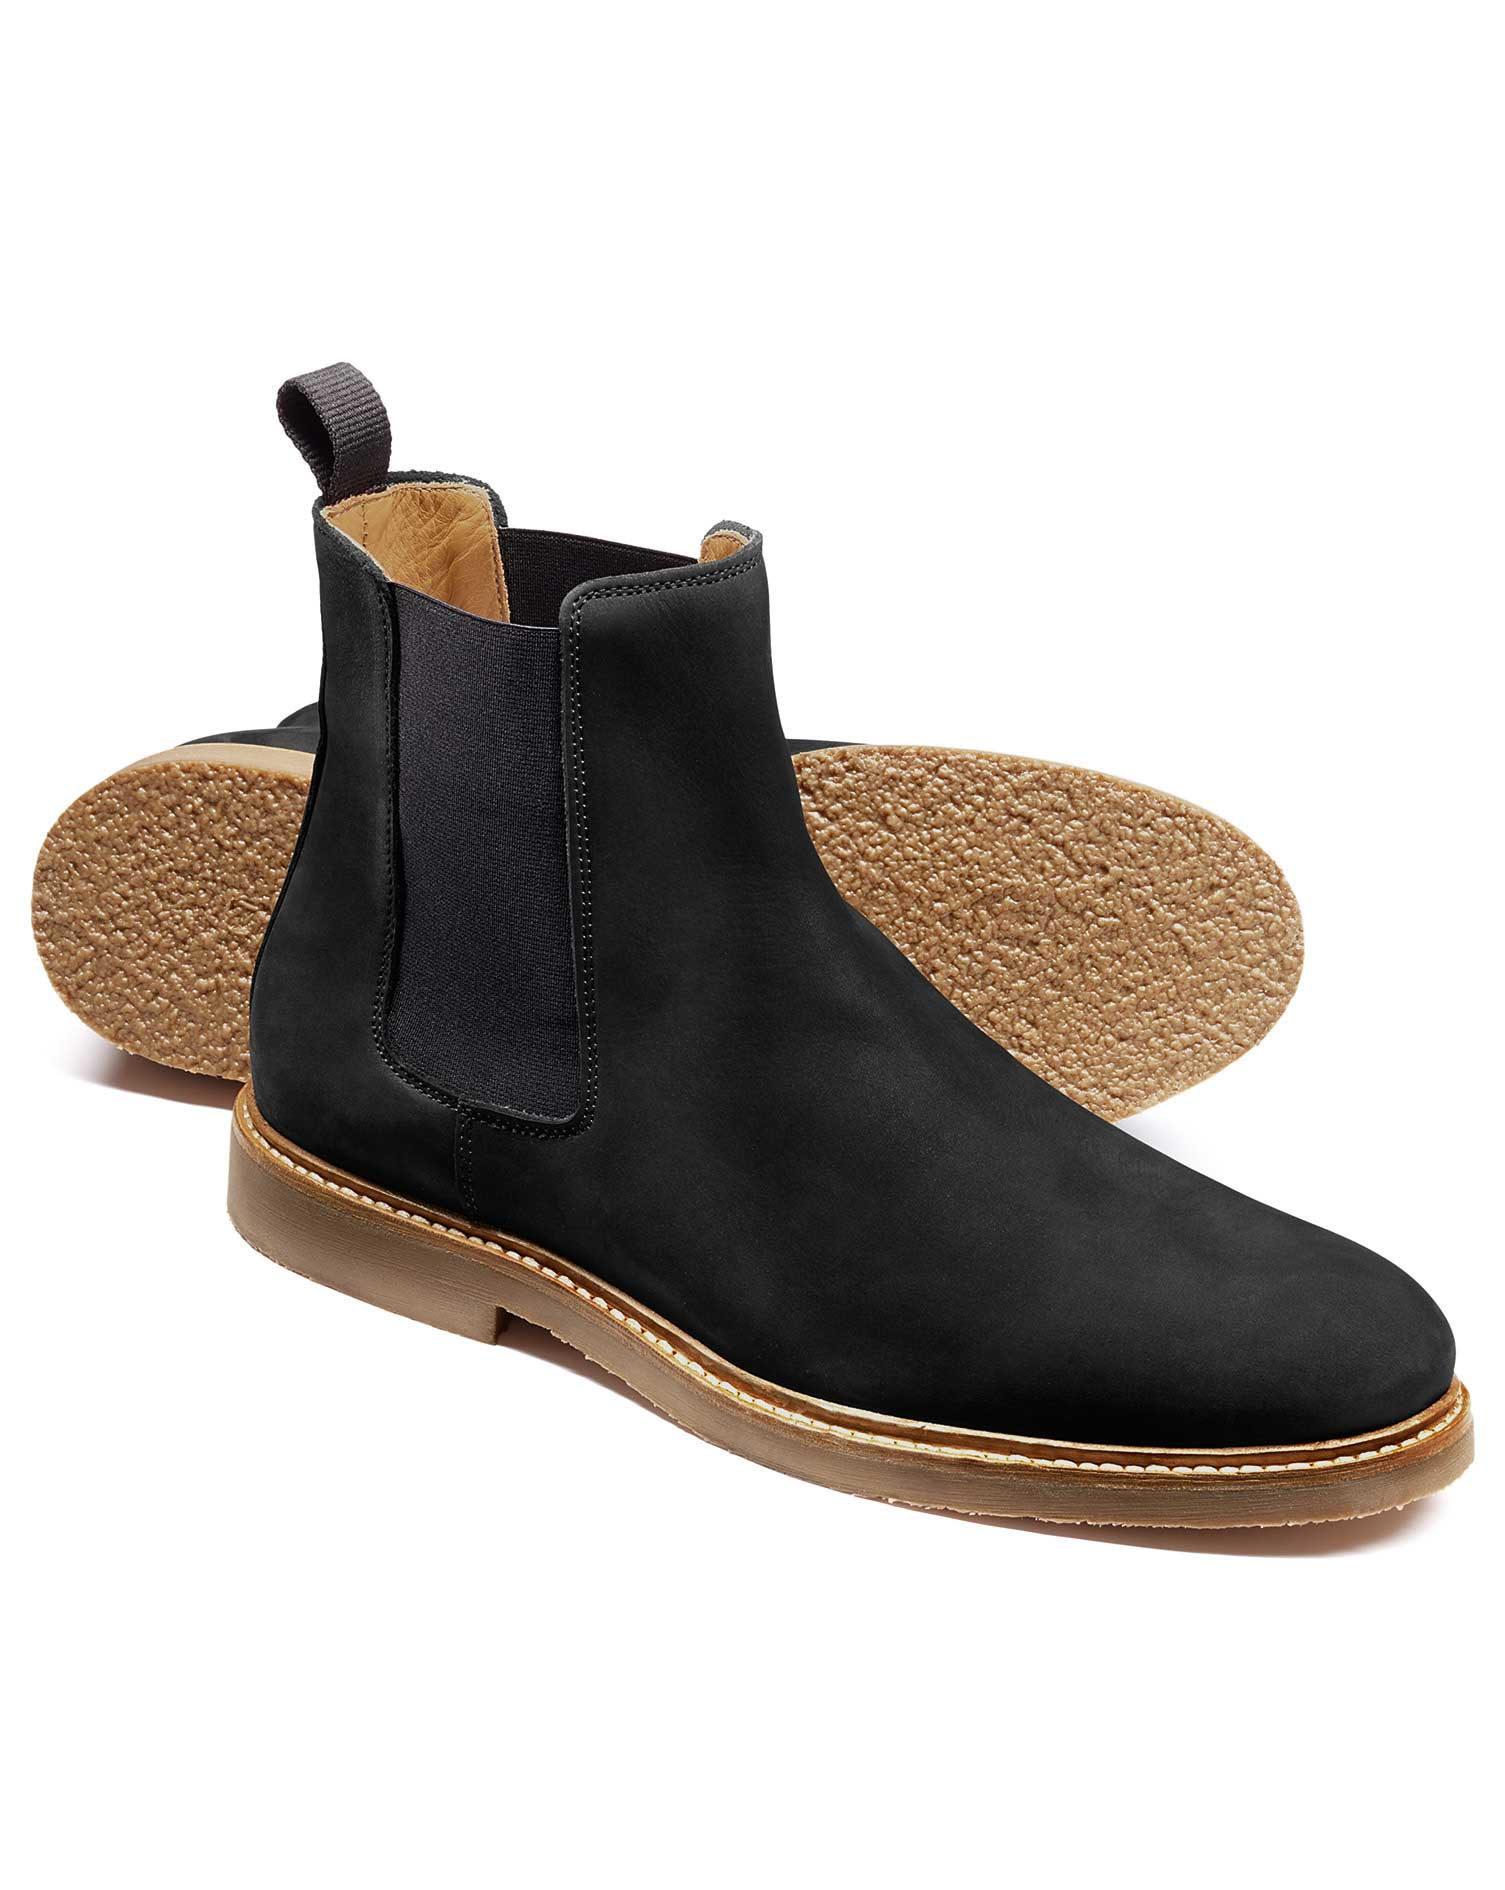 Black Nubuck Leather Chelsea Boots Size 11 R by Charles Tyrwhitt